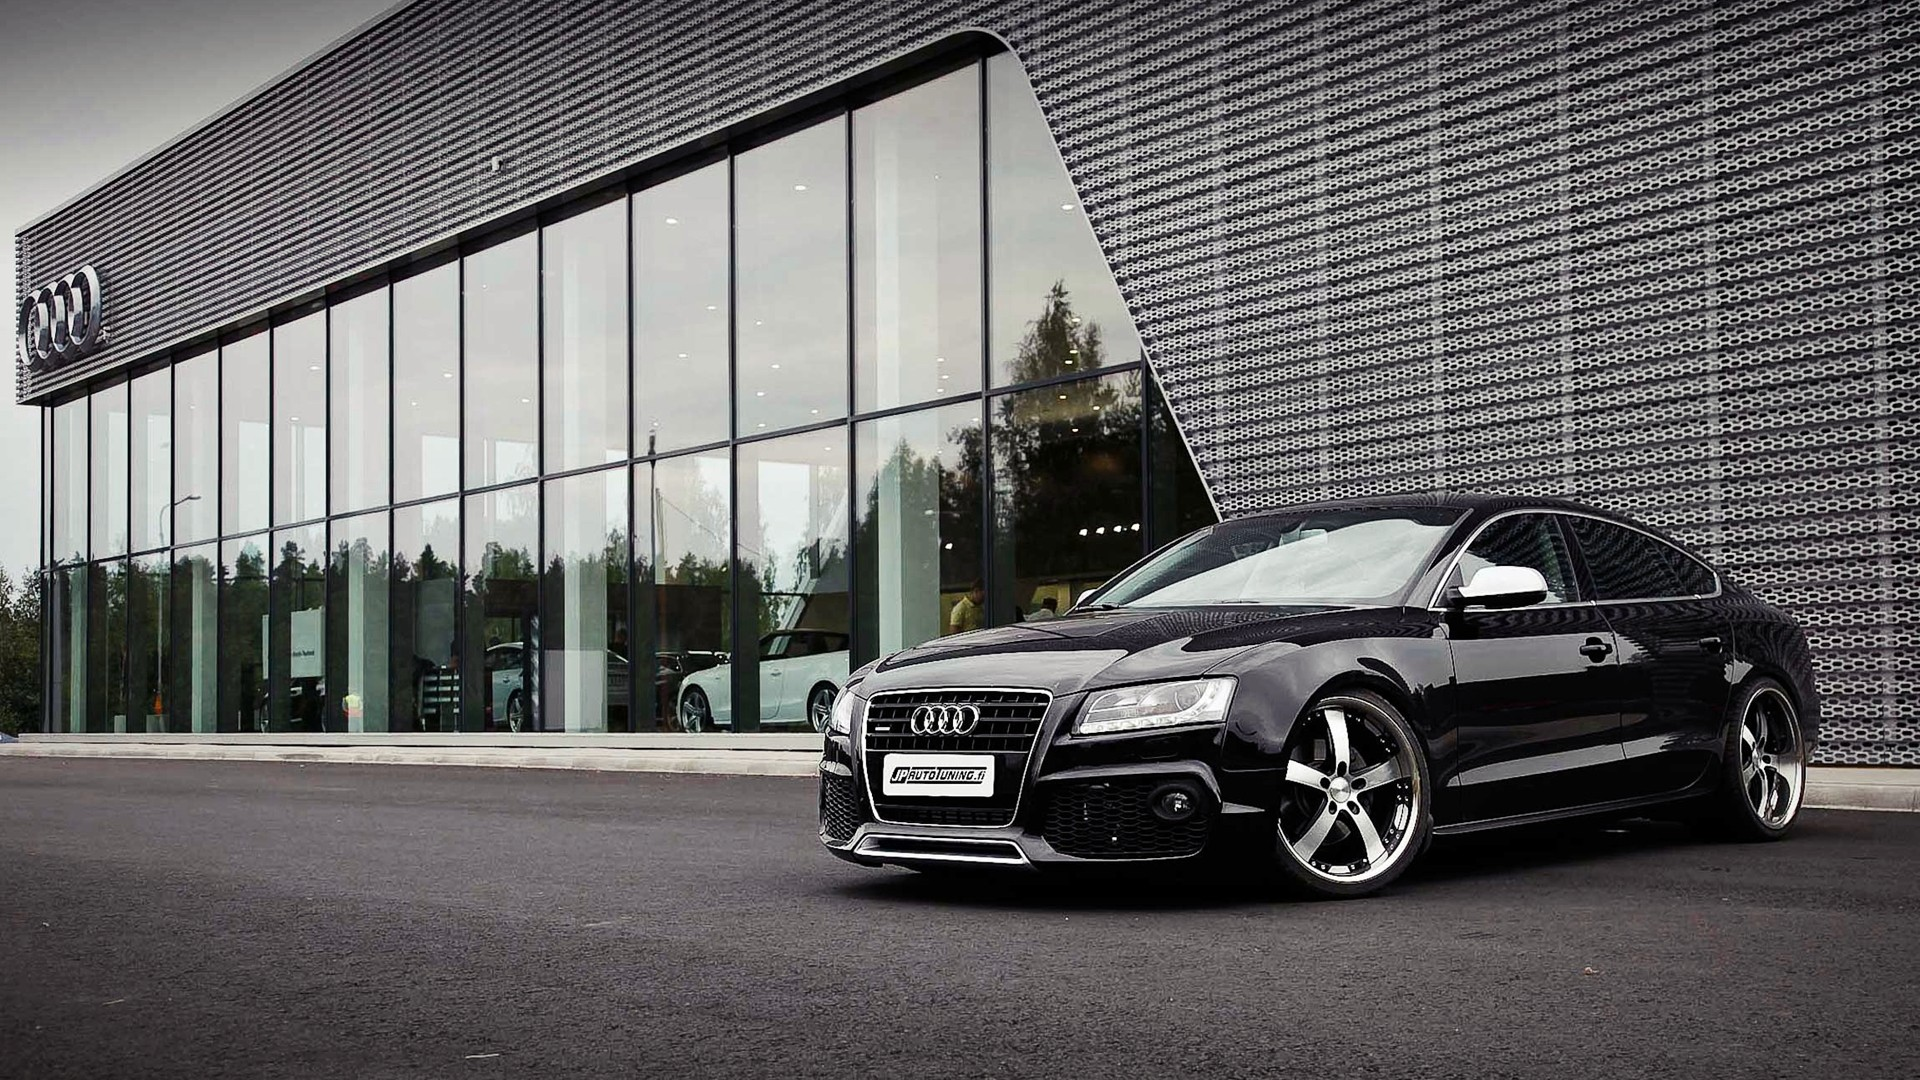 Awesome Audi S5 Wallpaper HD Wallpaper